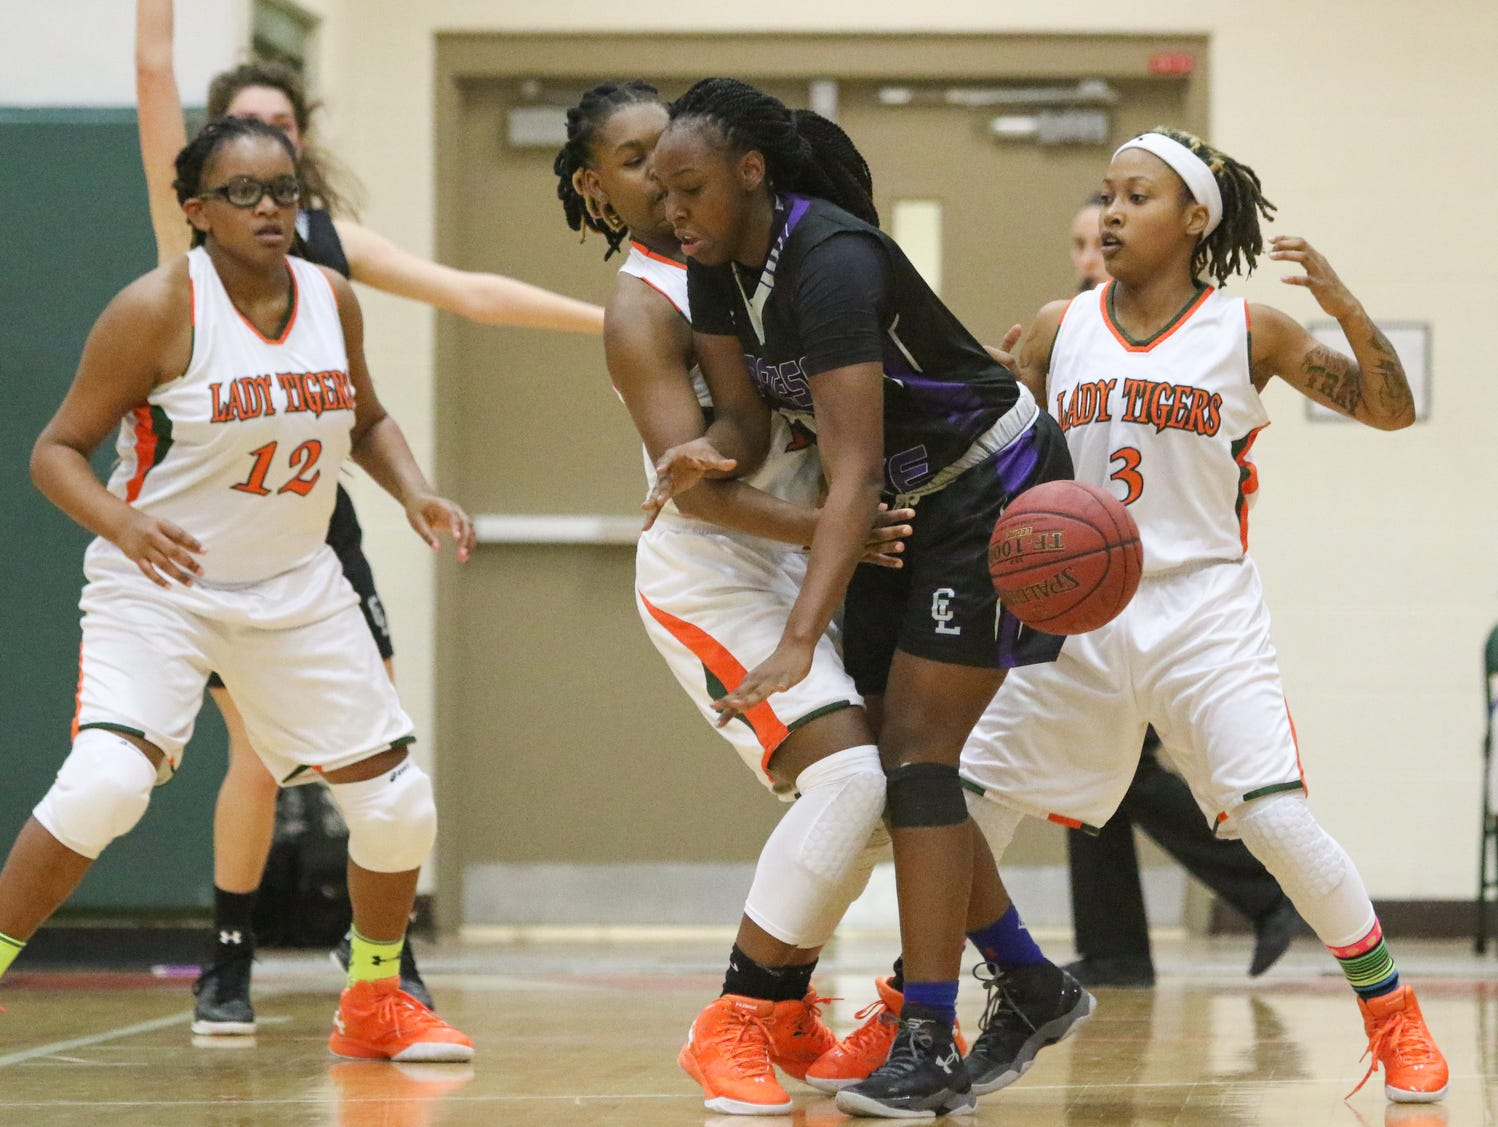 Dunbar's Keva'shay Edison (11) strips the ball from Cypress Lake's Shonteria Blanks (12) during the ladies basketball game at Dunbar High School in Fort Myers, FL on Wednesday, January 27, 2016. Dunbar defeated Cypress Lake to win the District 12 Championship.